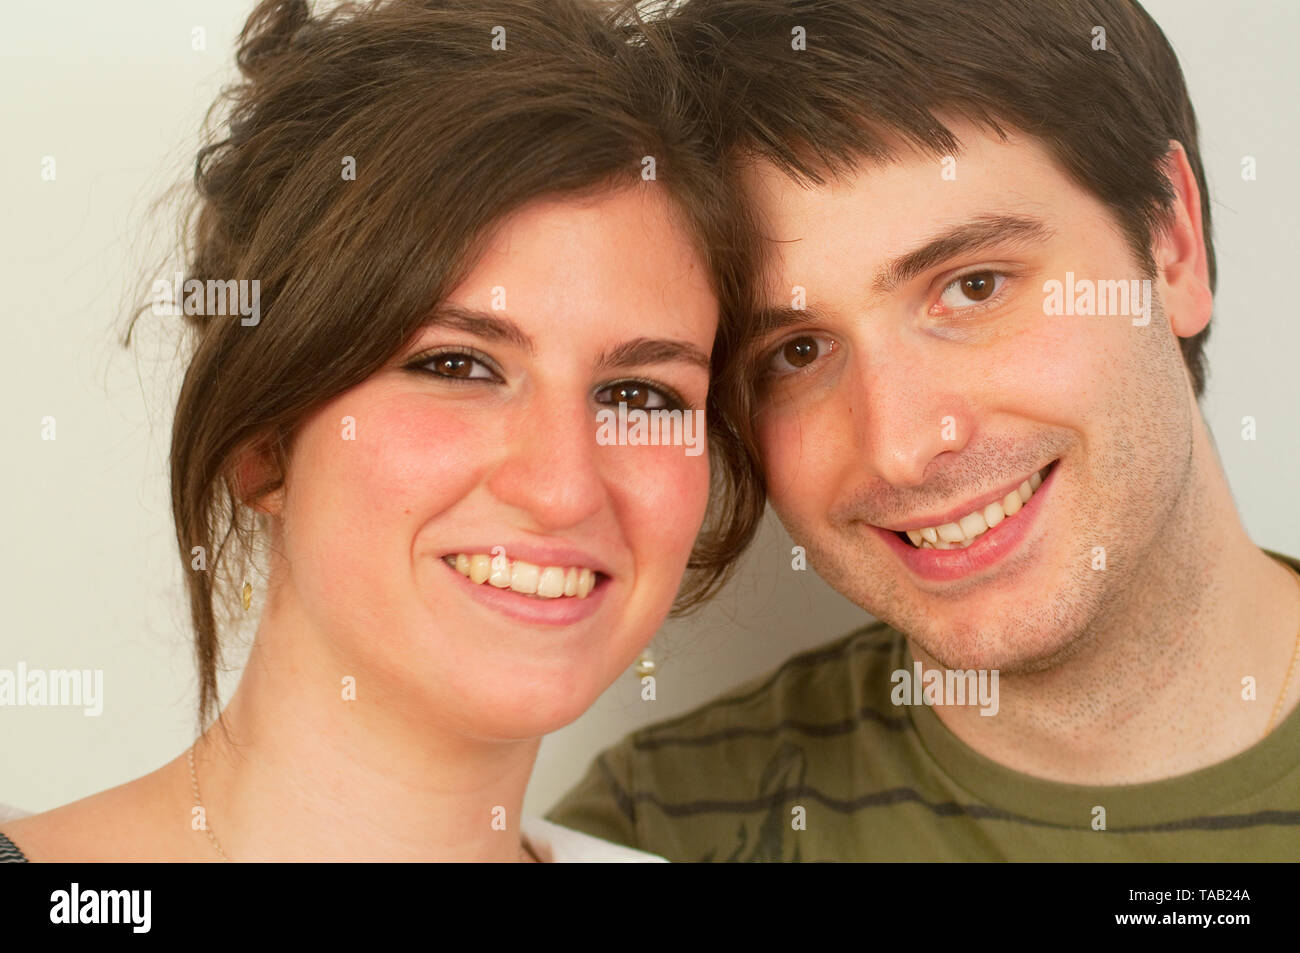 Young couple smiling and looking at the camera. Close view. - Stock Image